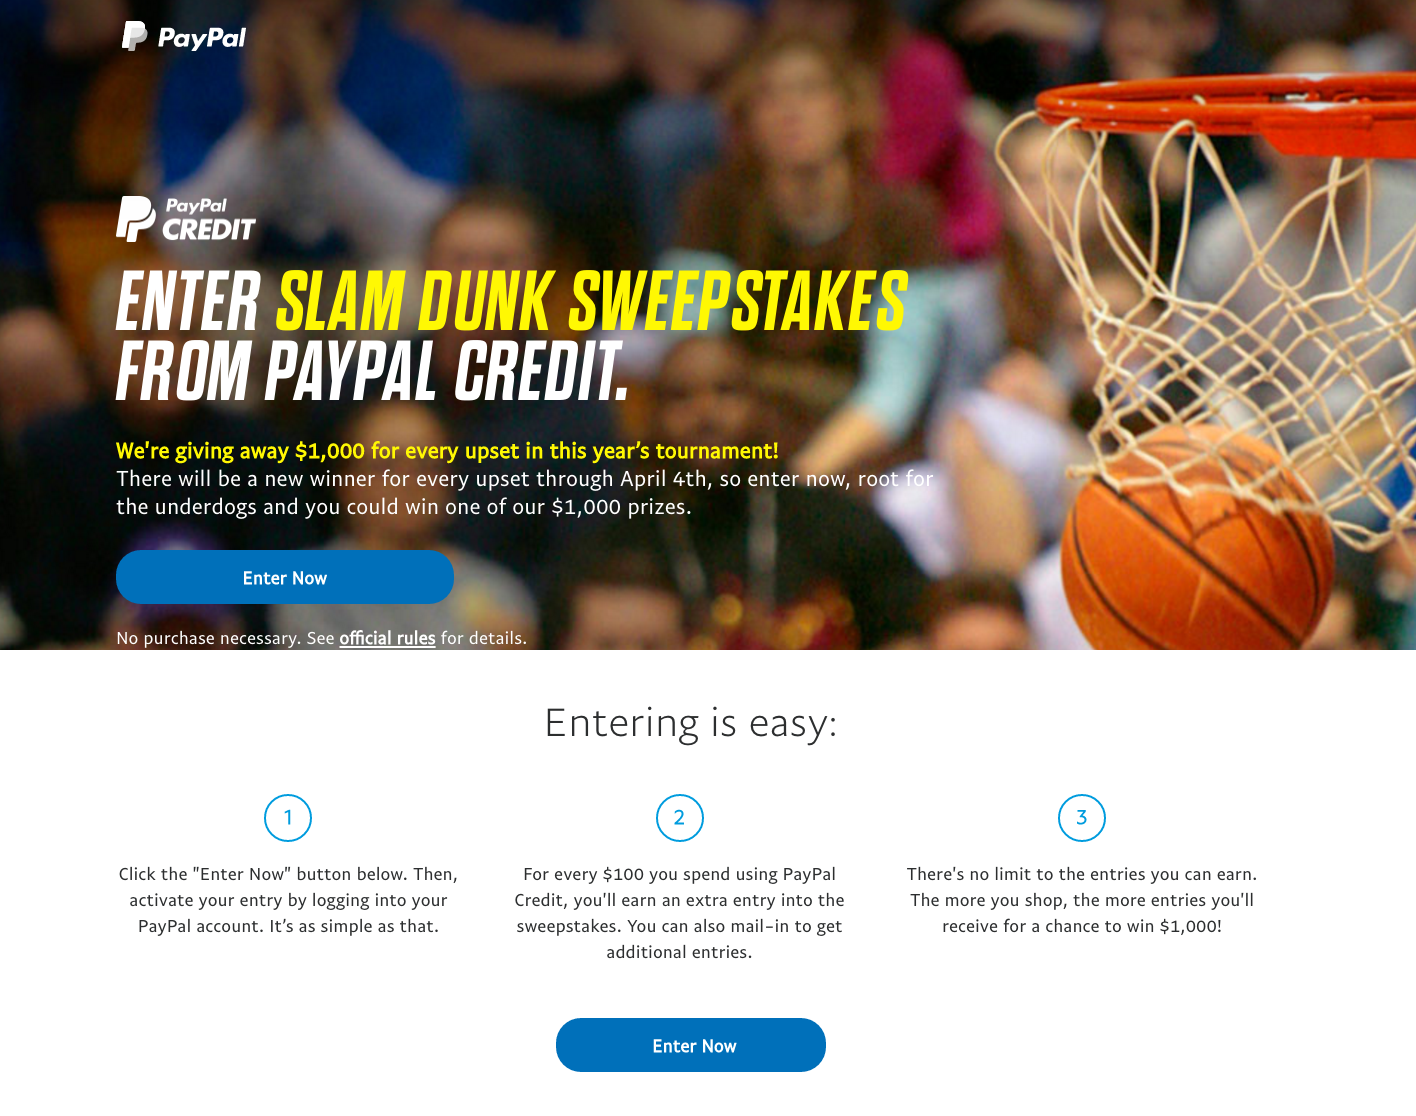 PayPal Credit Slam Dunk Sweepstakes